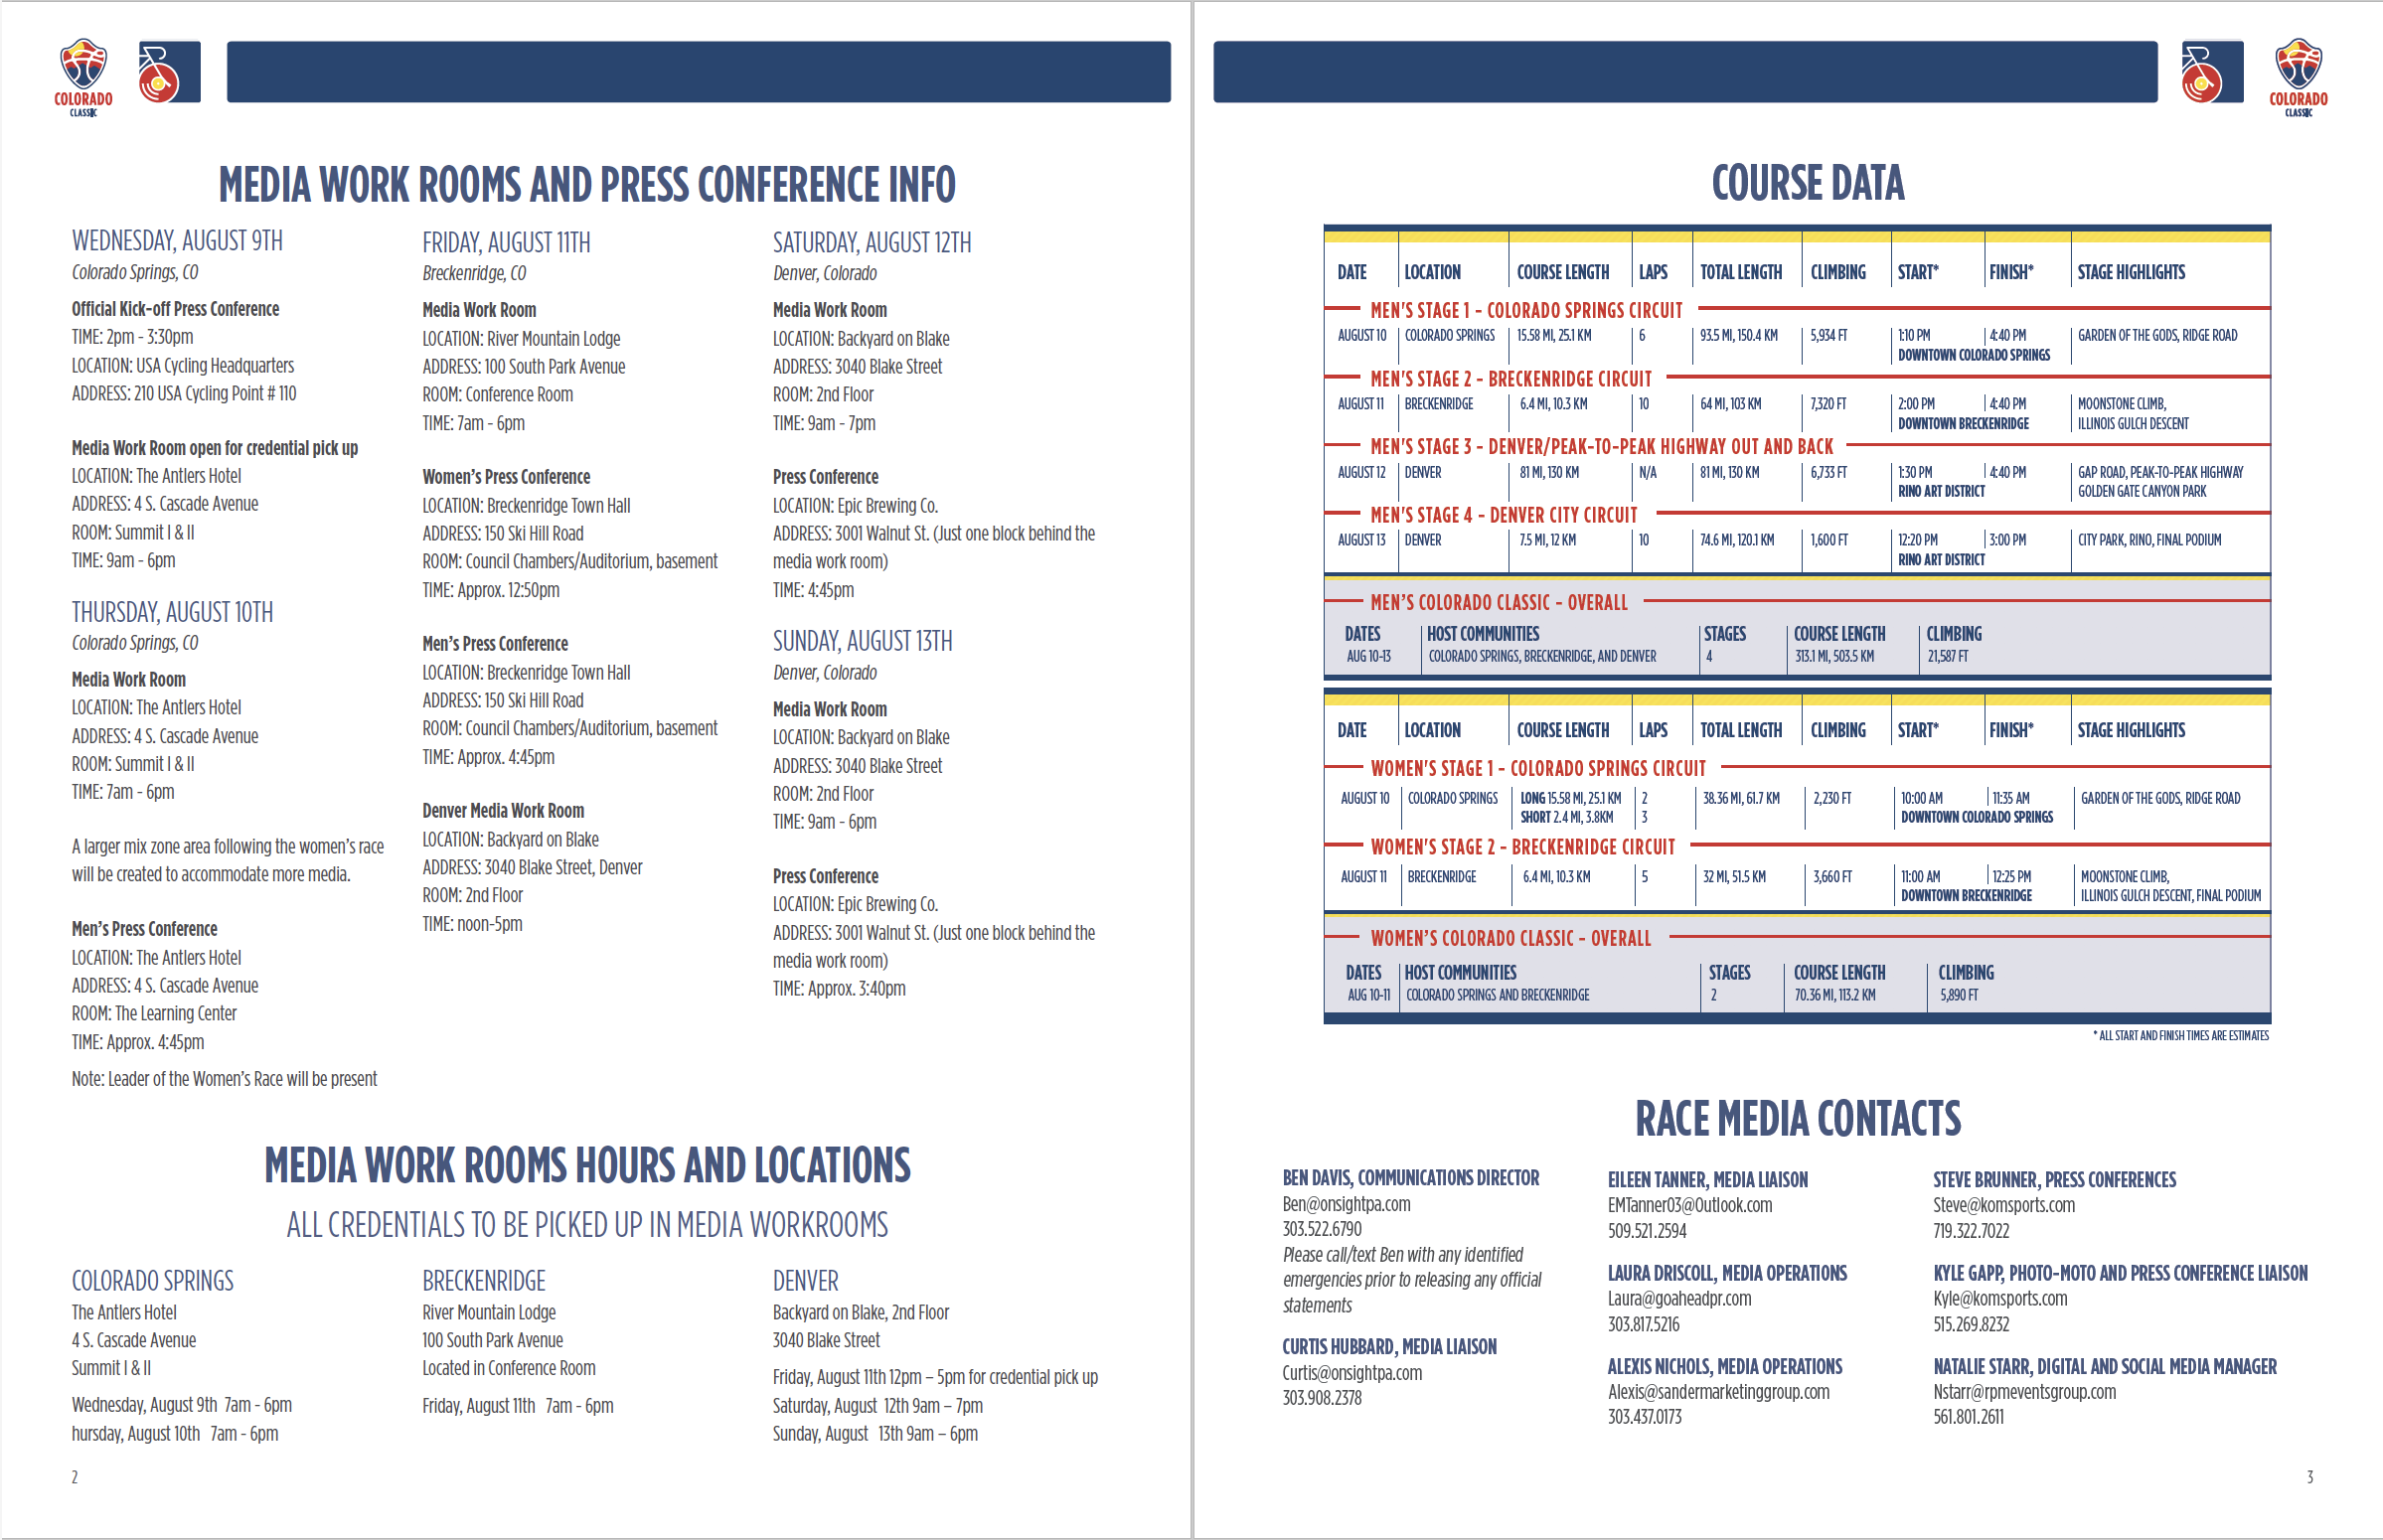 Media guide spread with lists and charts